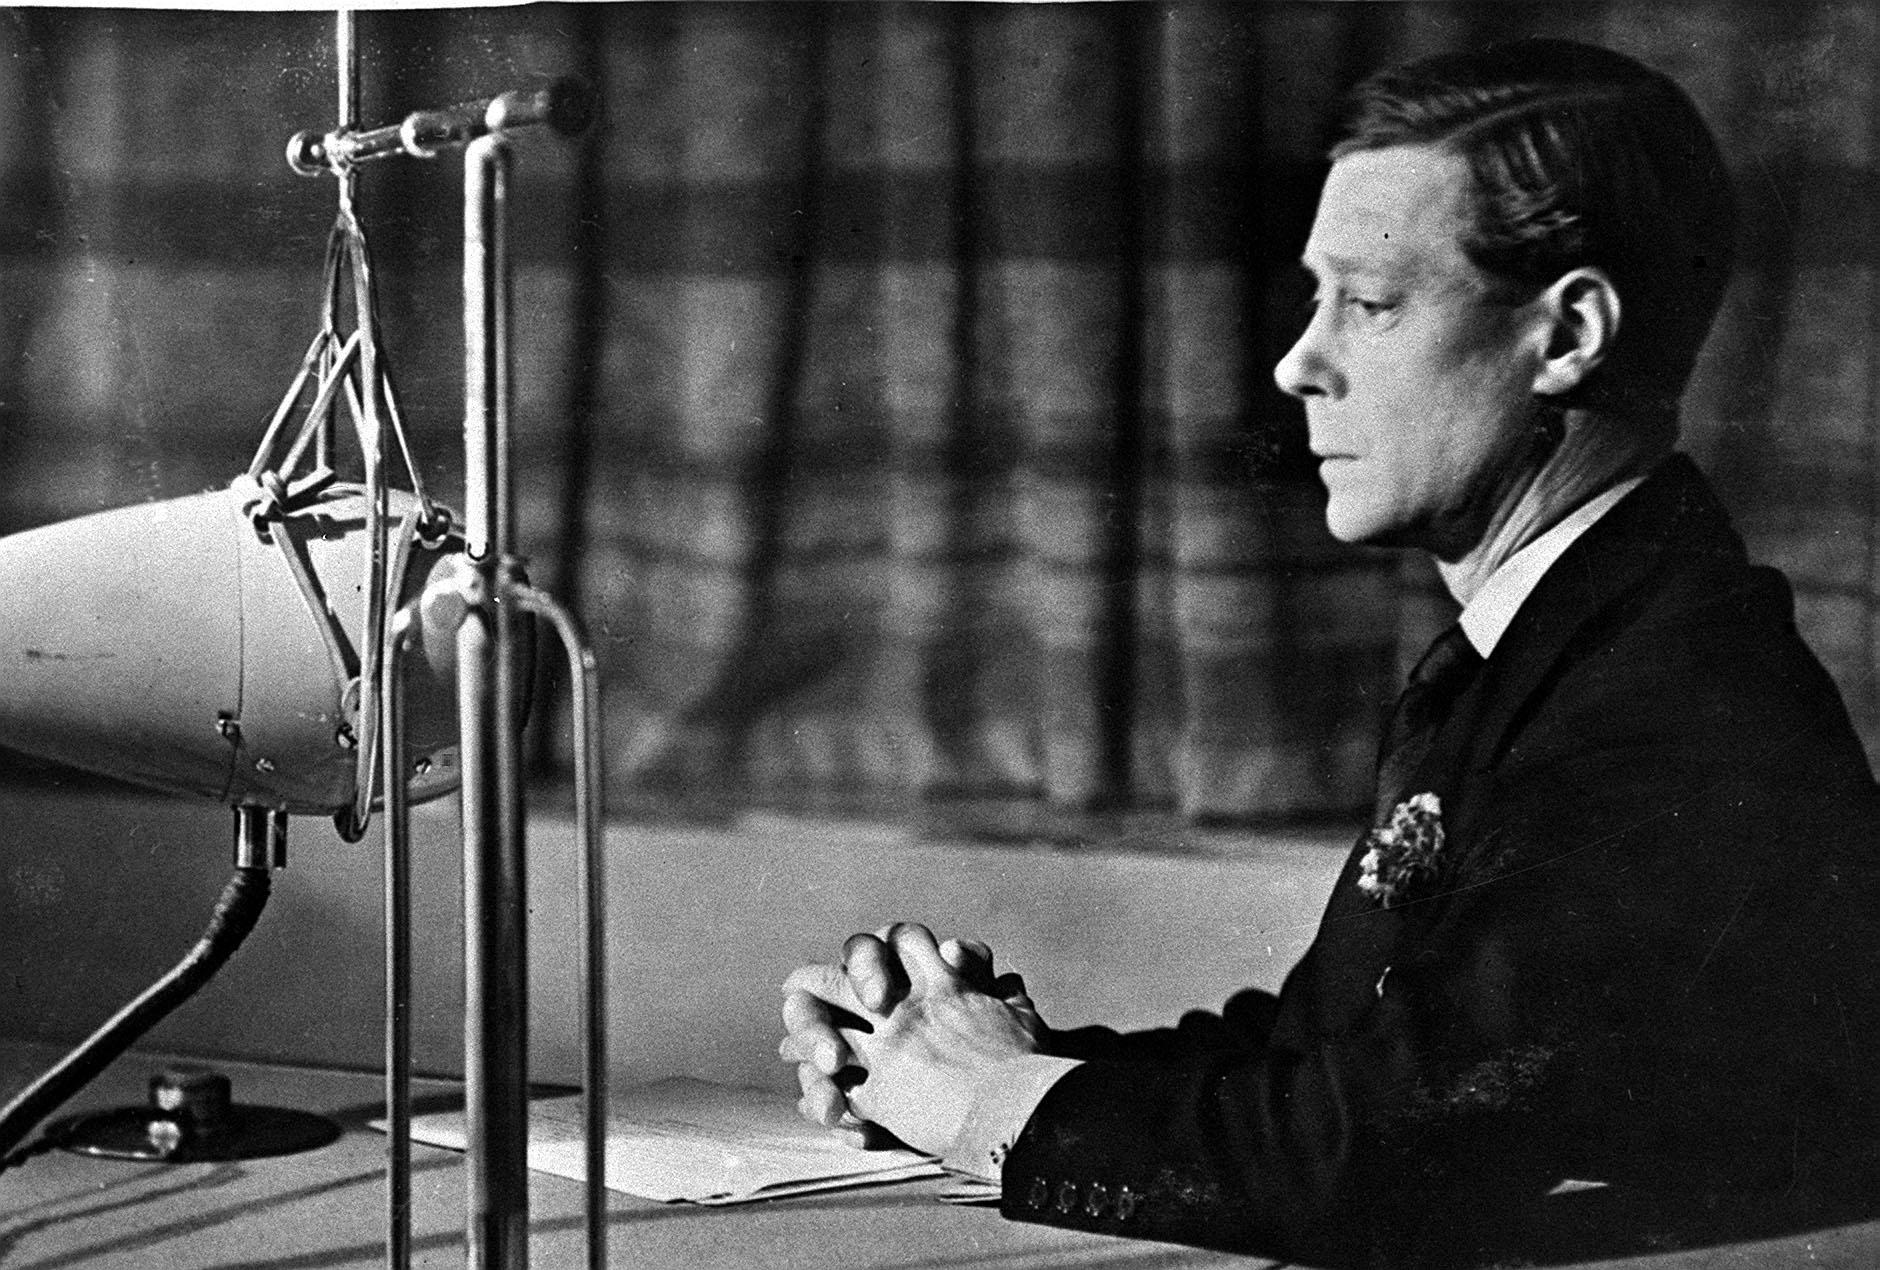 On this Day in History - King Edward VIII tells Prime Minsiter Satnley baldwin that he intends to marry the American divorcee Wallace Simpson. This photo is of the King announcing his intentions to Abdicate the throne so he could marry Wallace Simpson. 13/11/1936